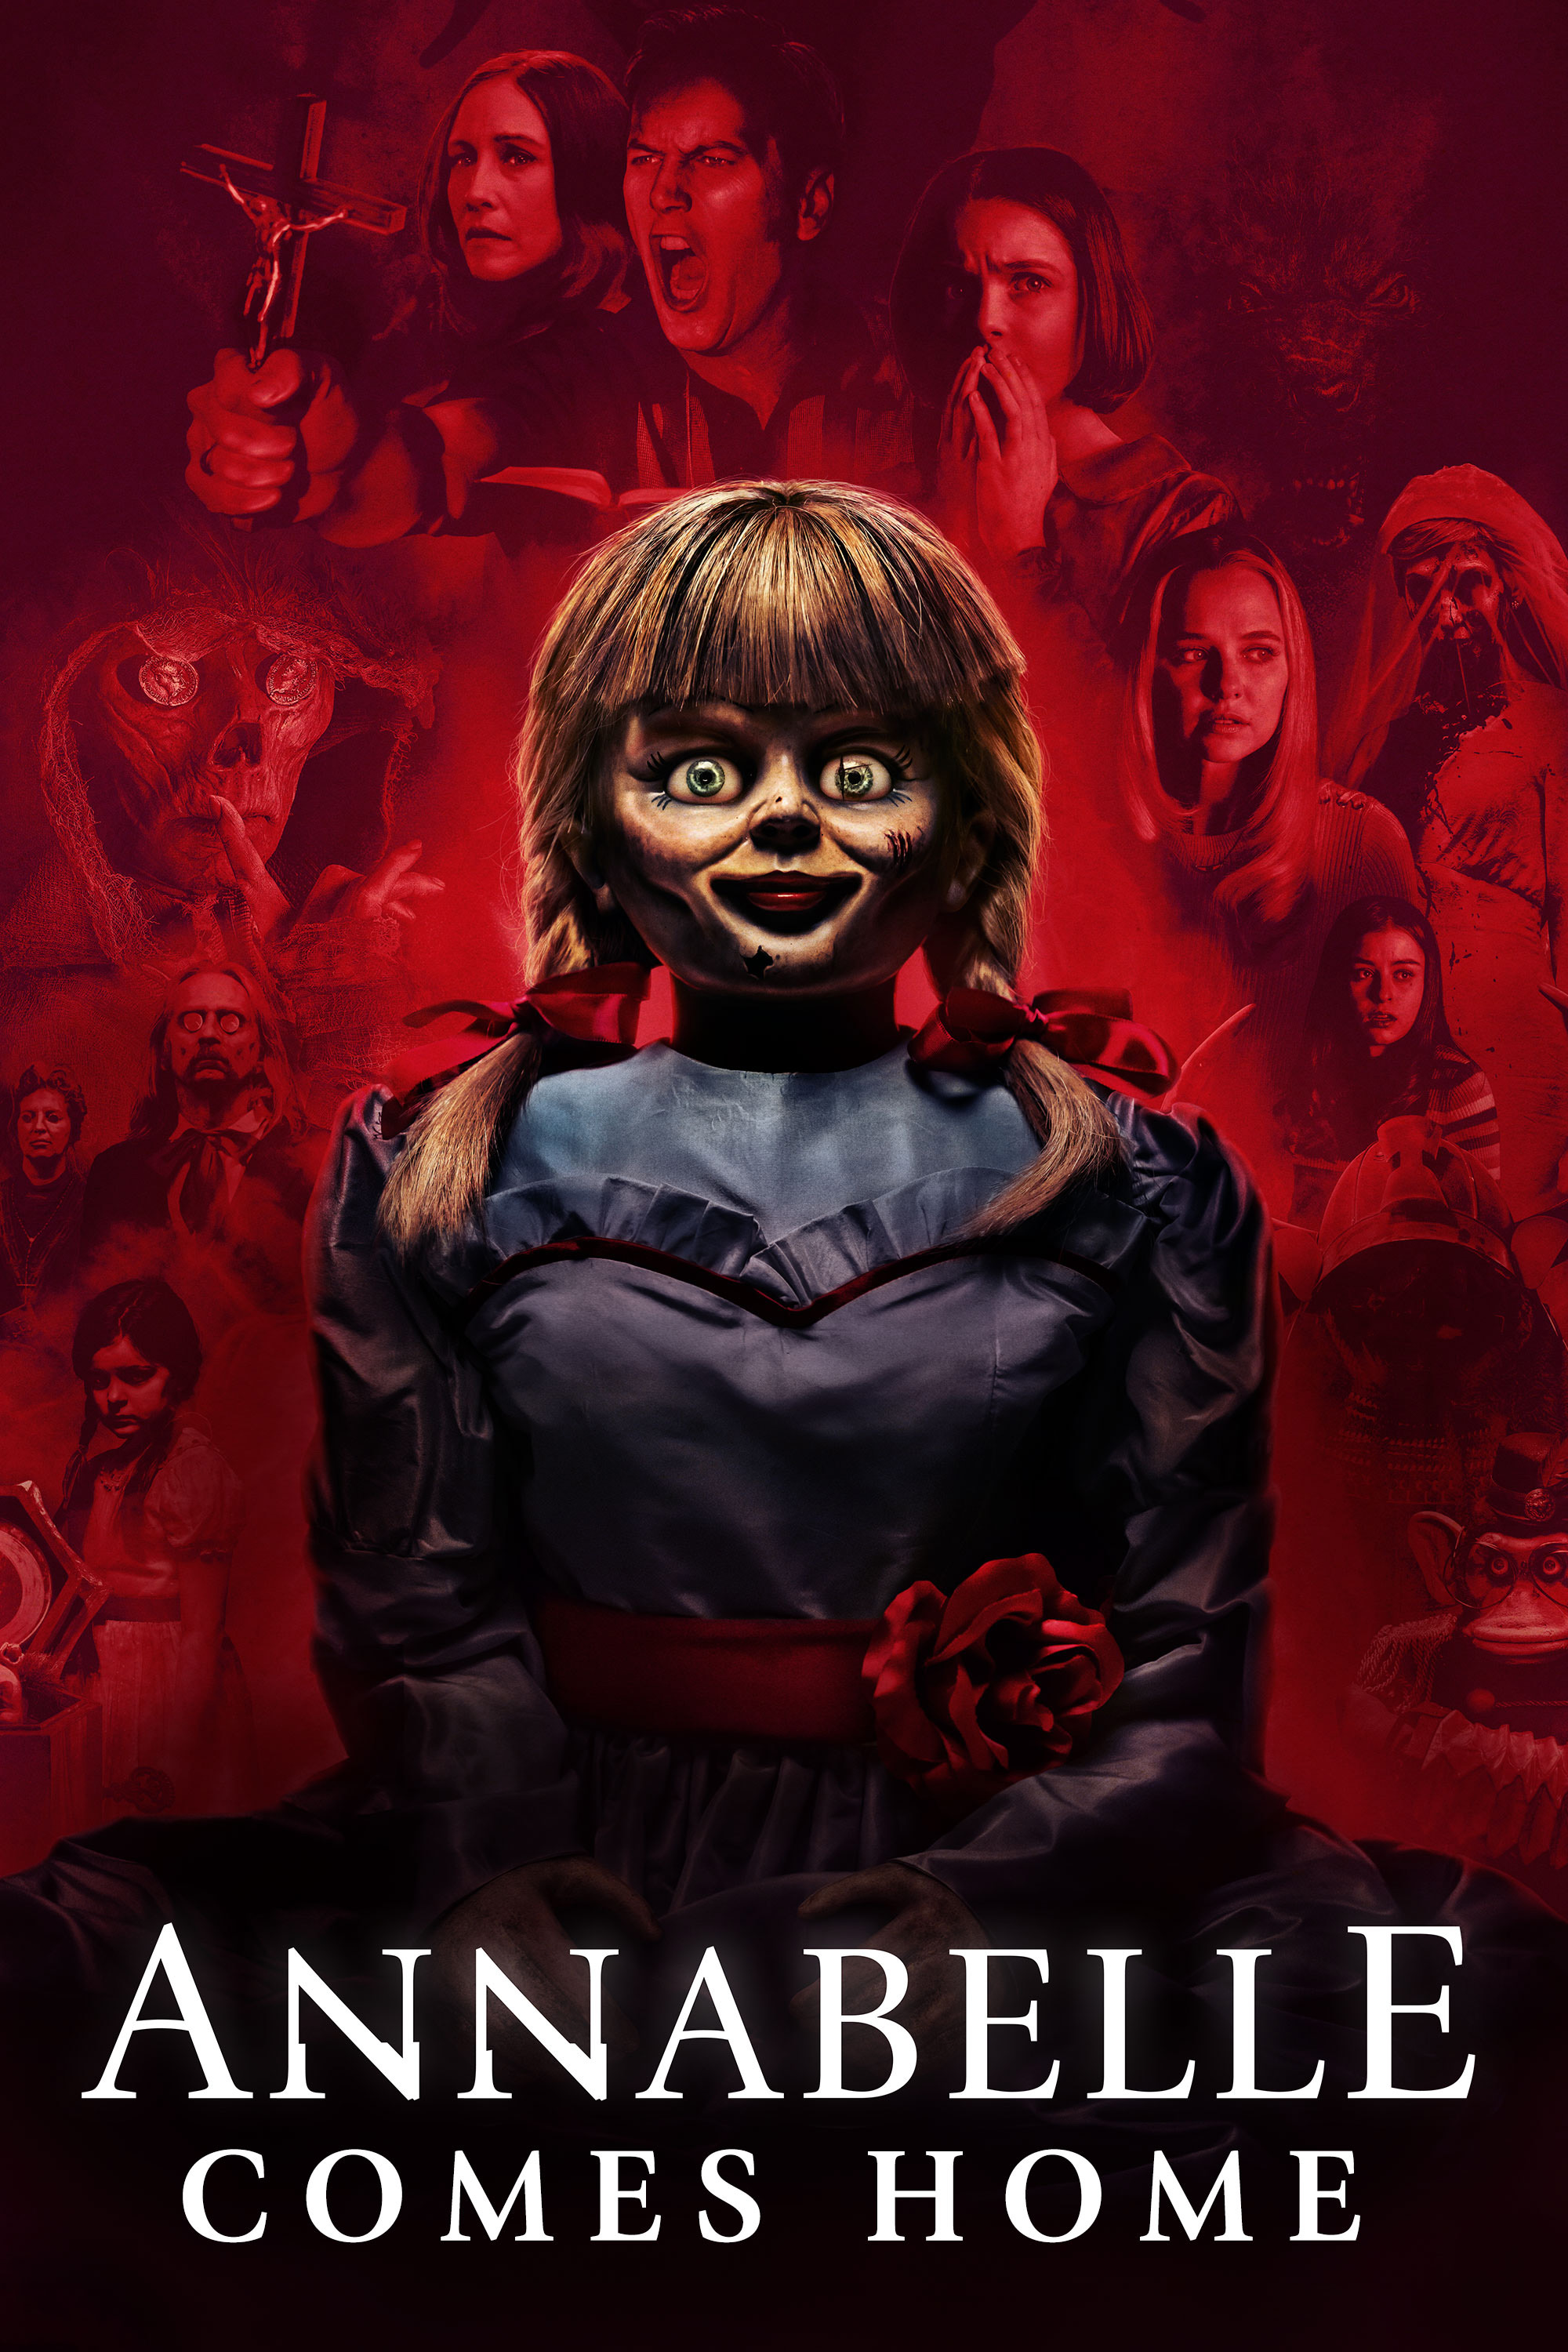 Annabelle Comes Home | Buy, Rent or Watch on FandangoNOW